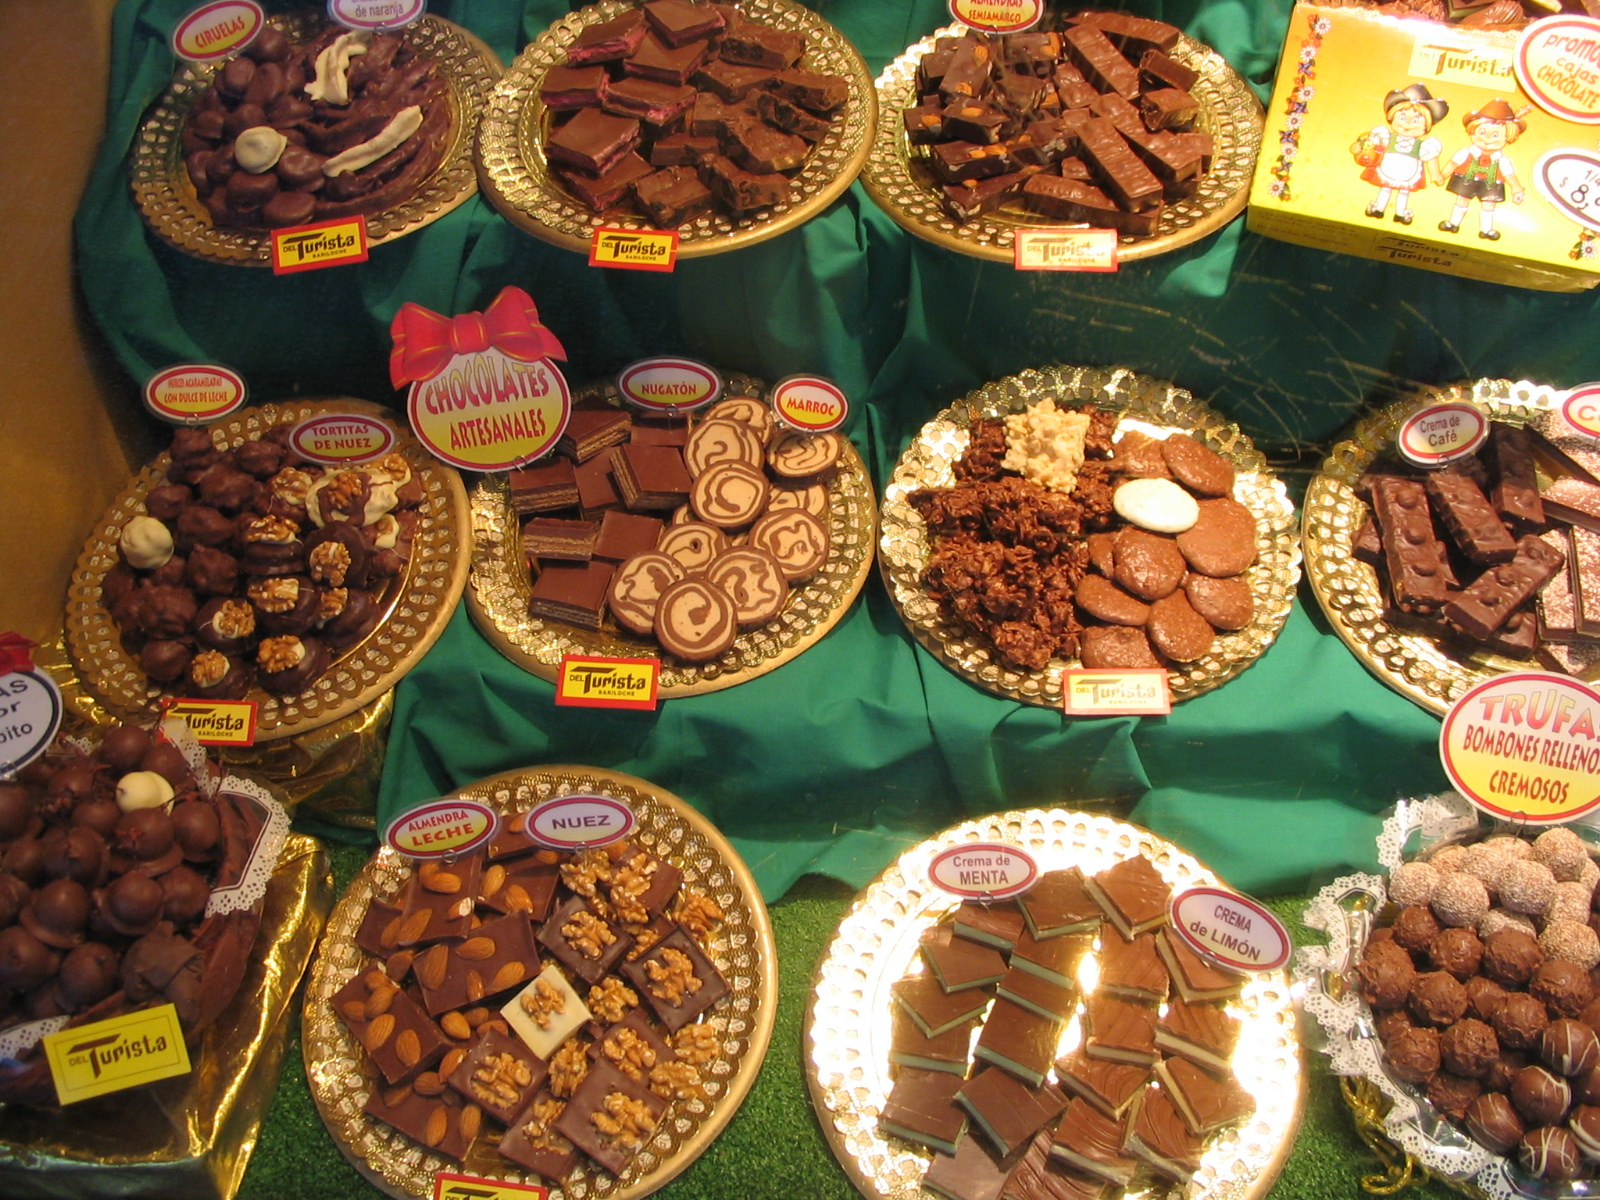 Chocolate offerings, Bariloche